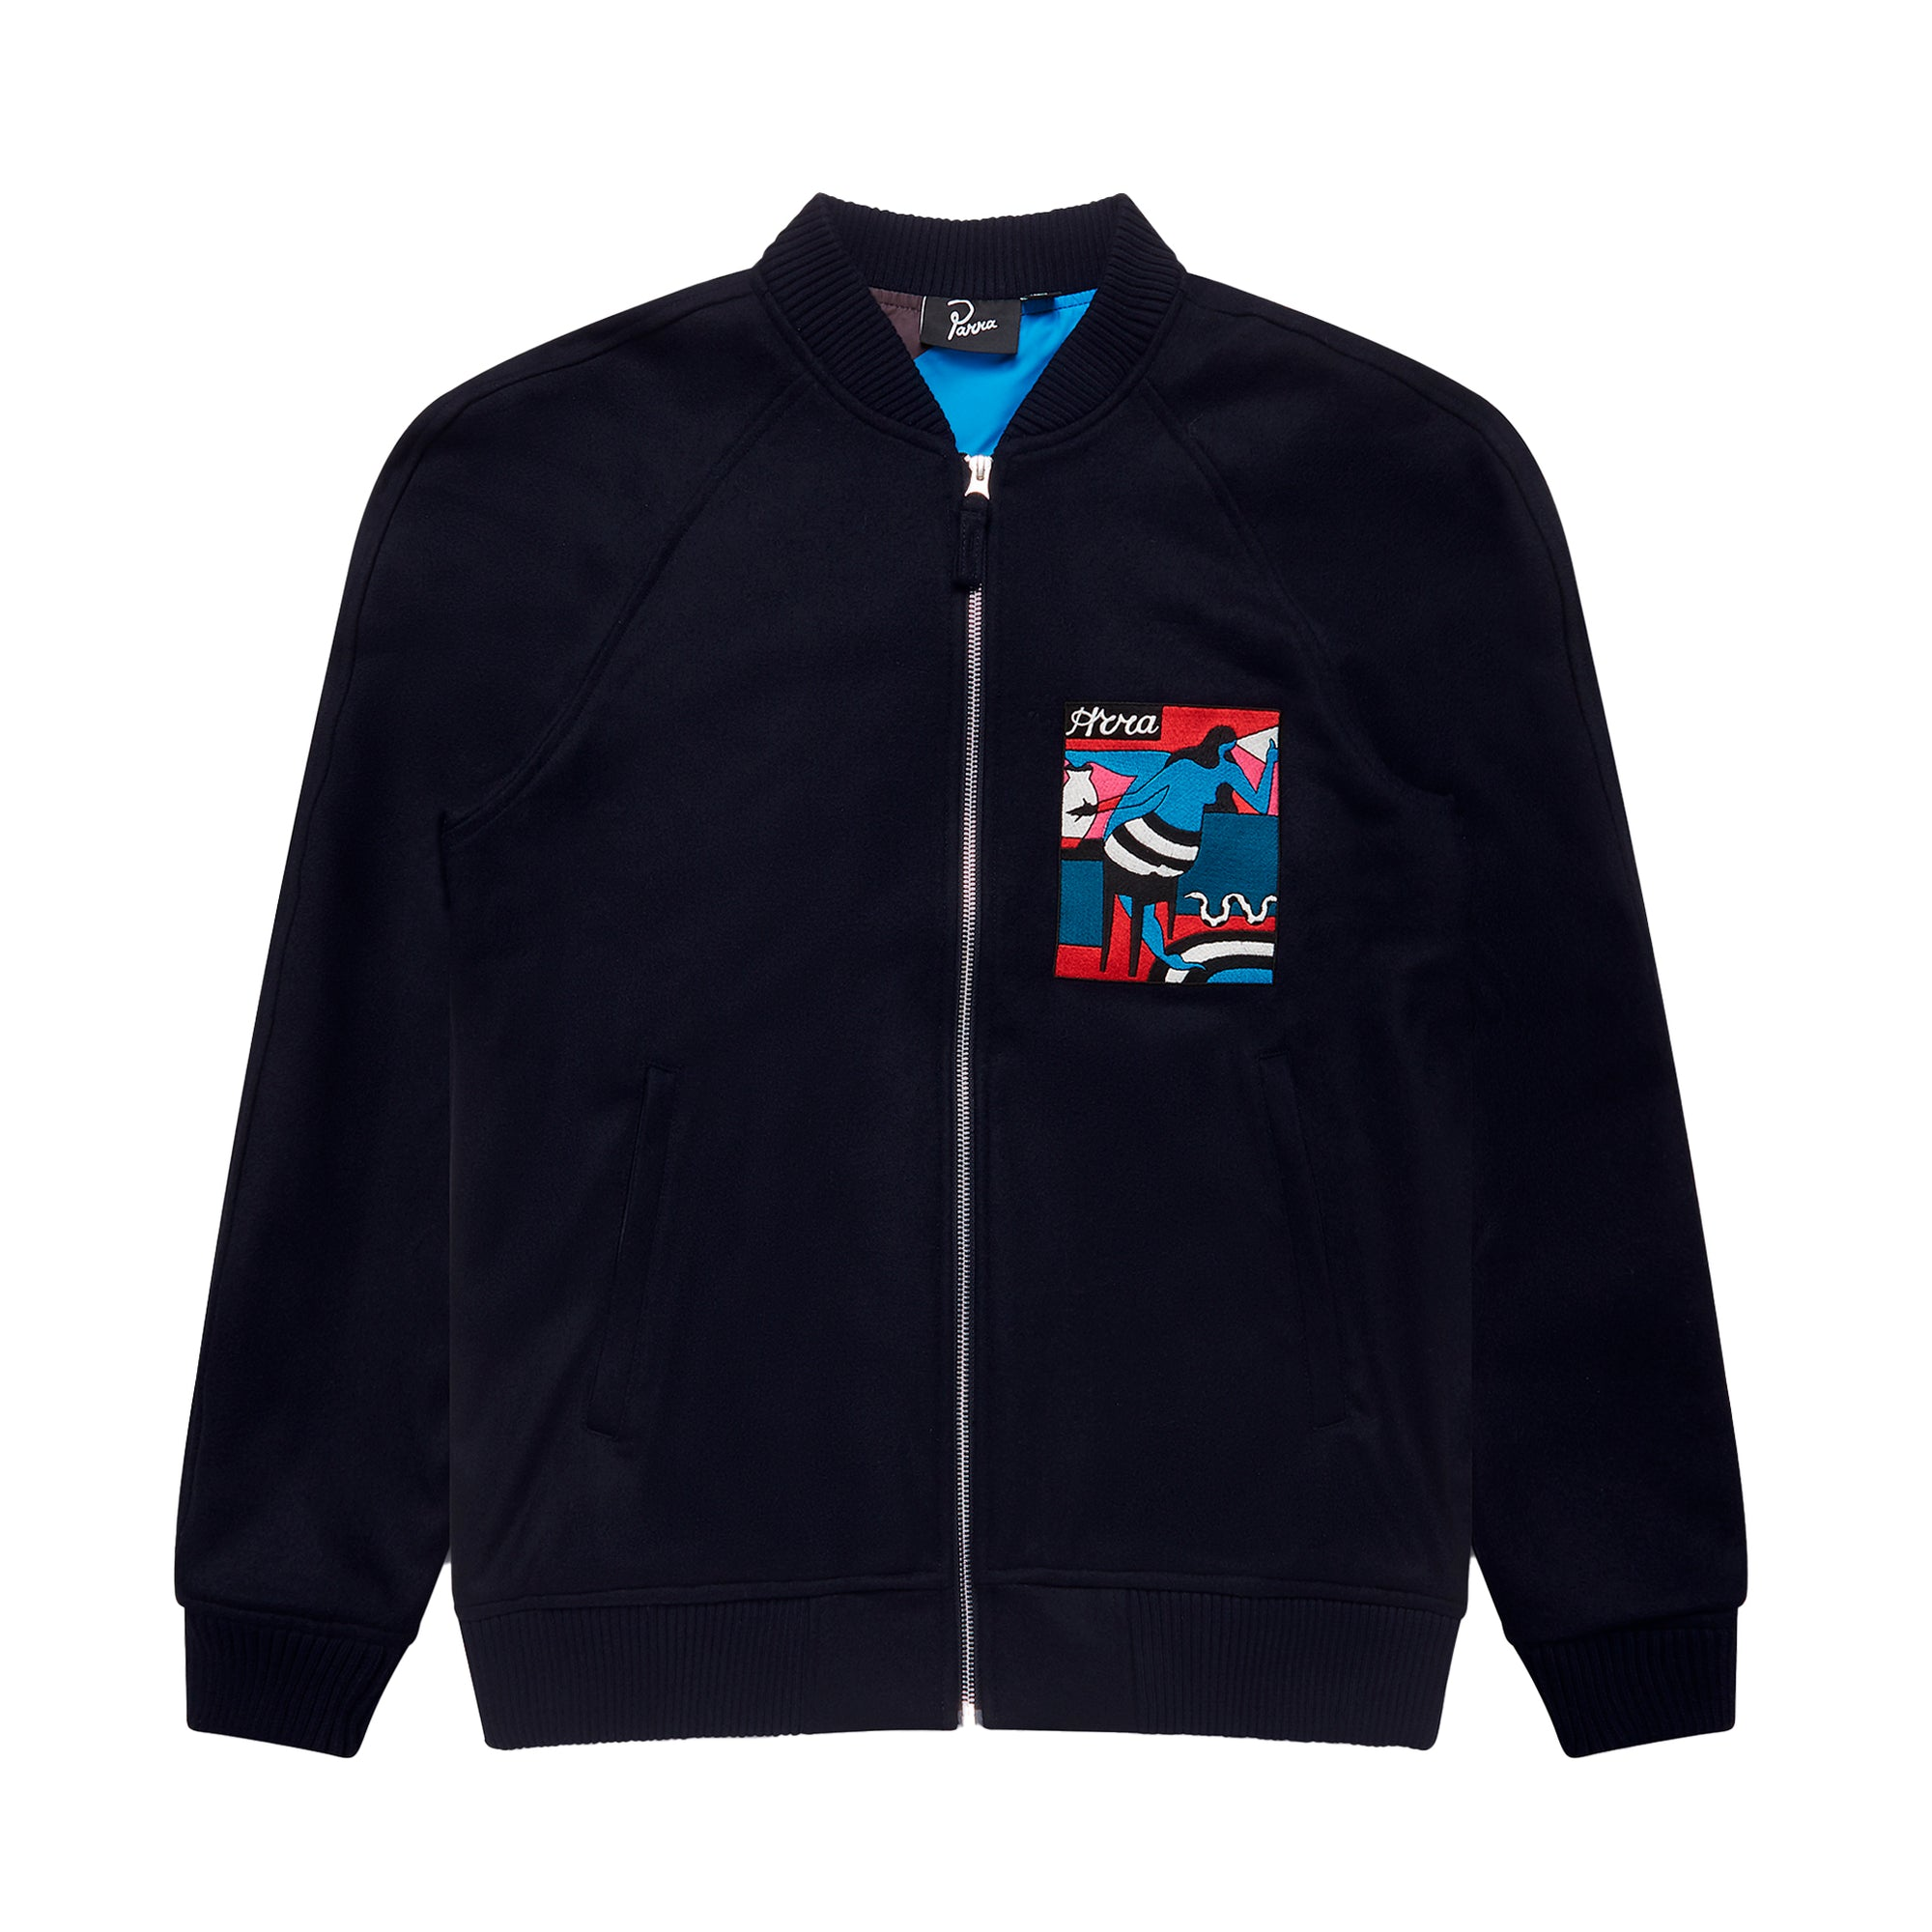 Parra Bar Messy Wool Jacket: Dark Navy - The Union Project